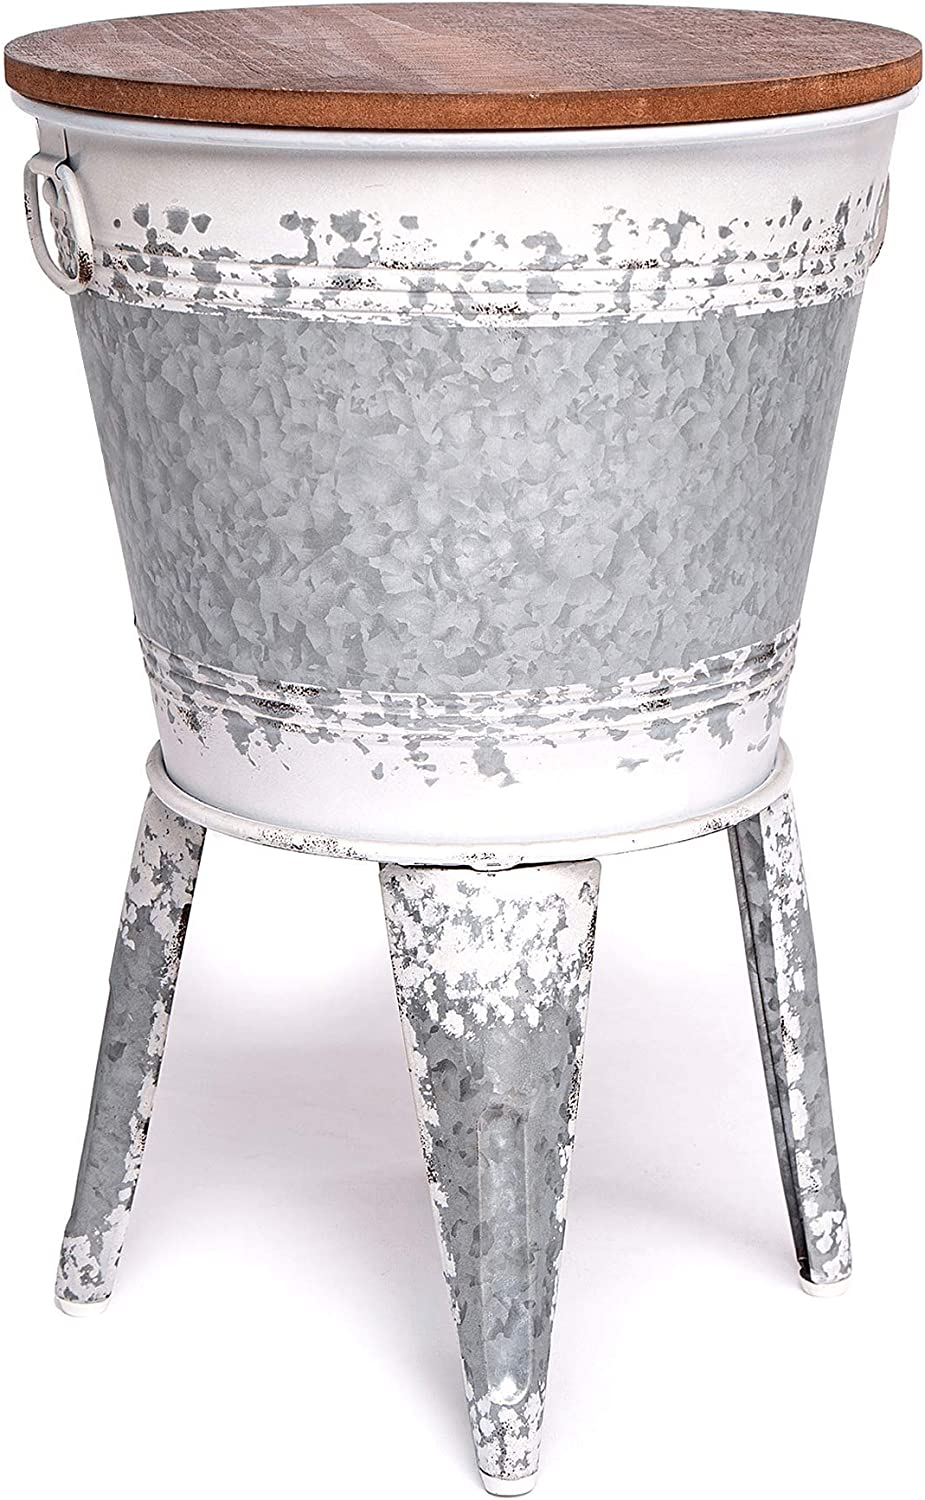 Farmhouse Accent Side Table - Galvanized Rustic End Table. Metal Storage Bin Wood Cover. Coffee or Cocktail Table - Distressed White